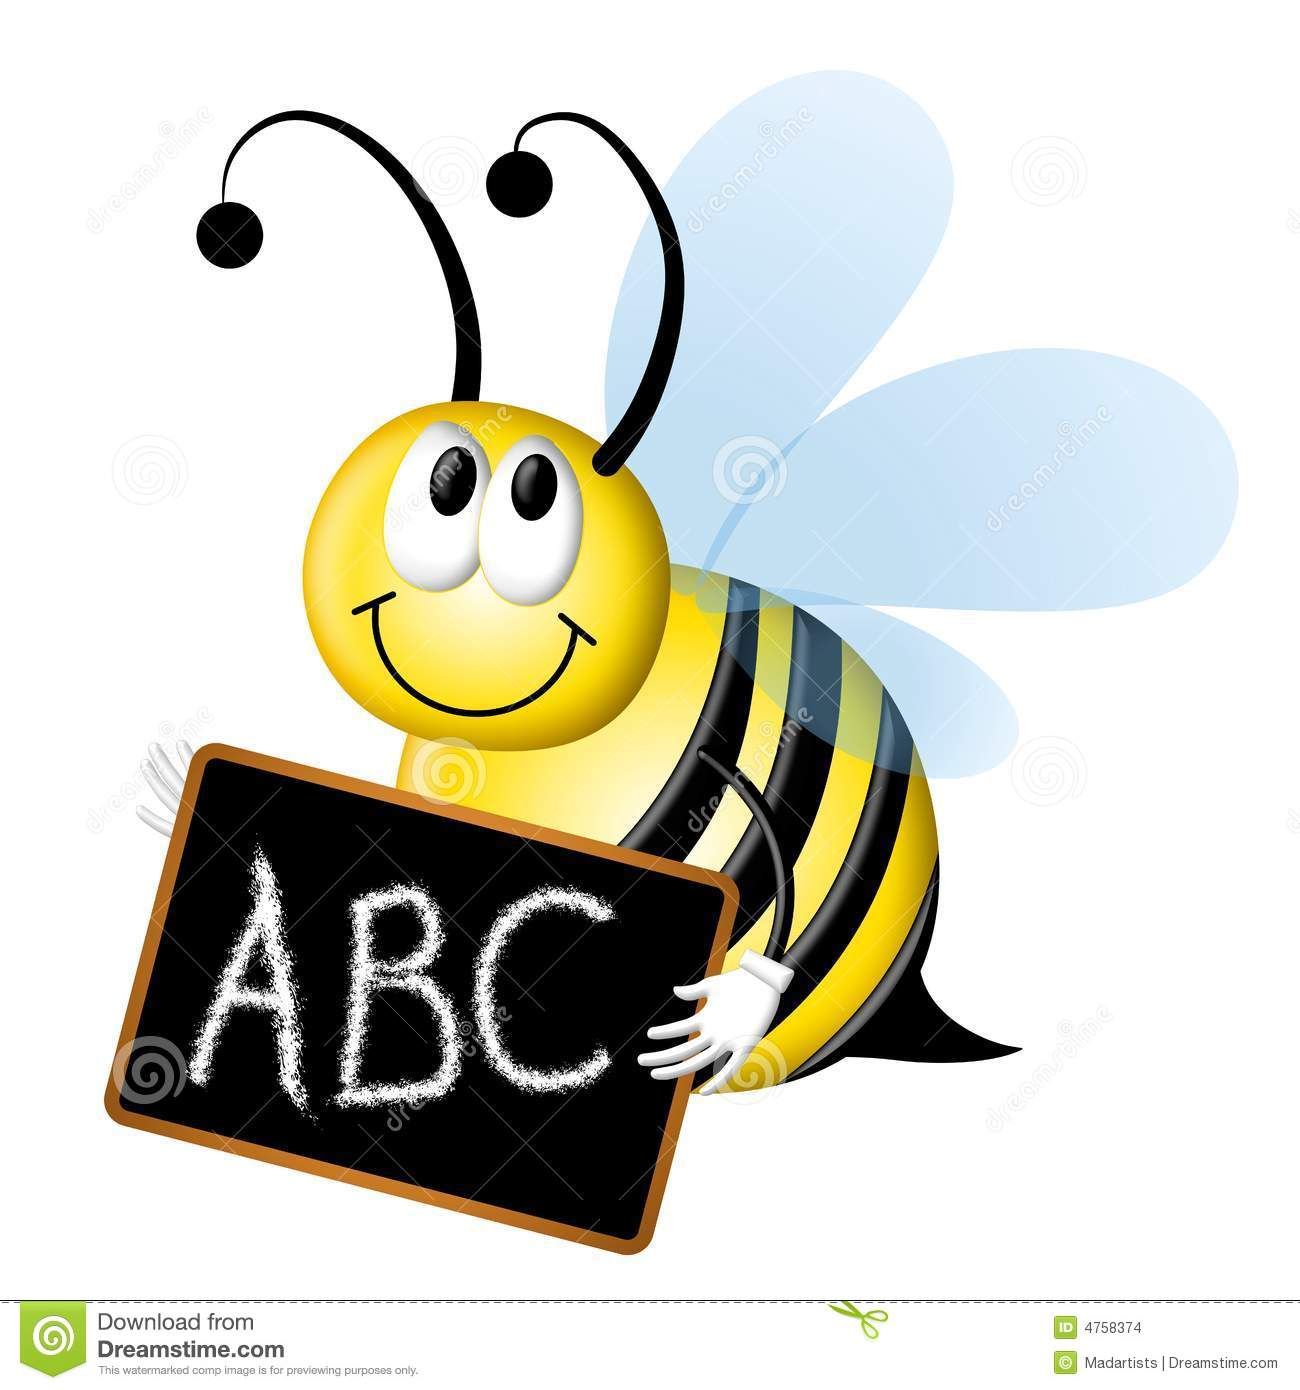 Alphabet bee abc clipart image transparent Alphabet bee abc clipart - ClipartFest image transparent